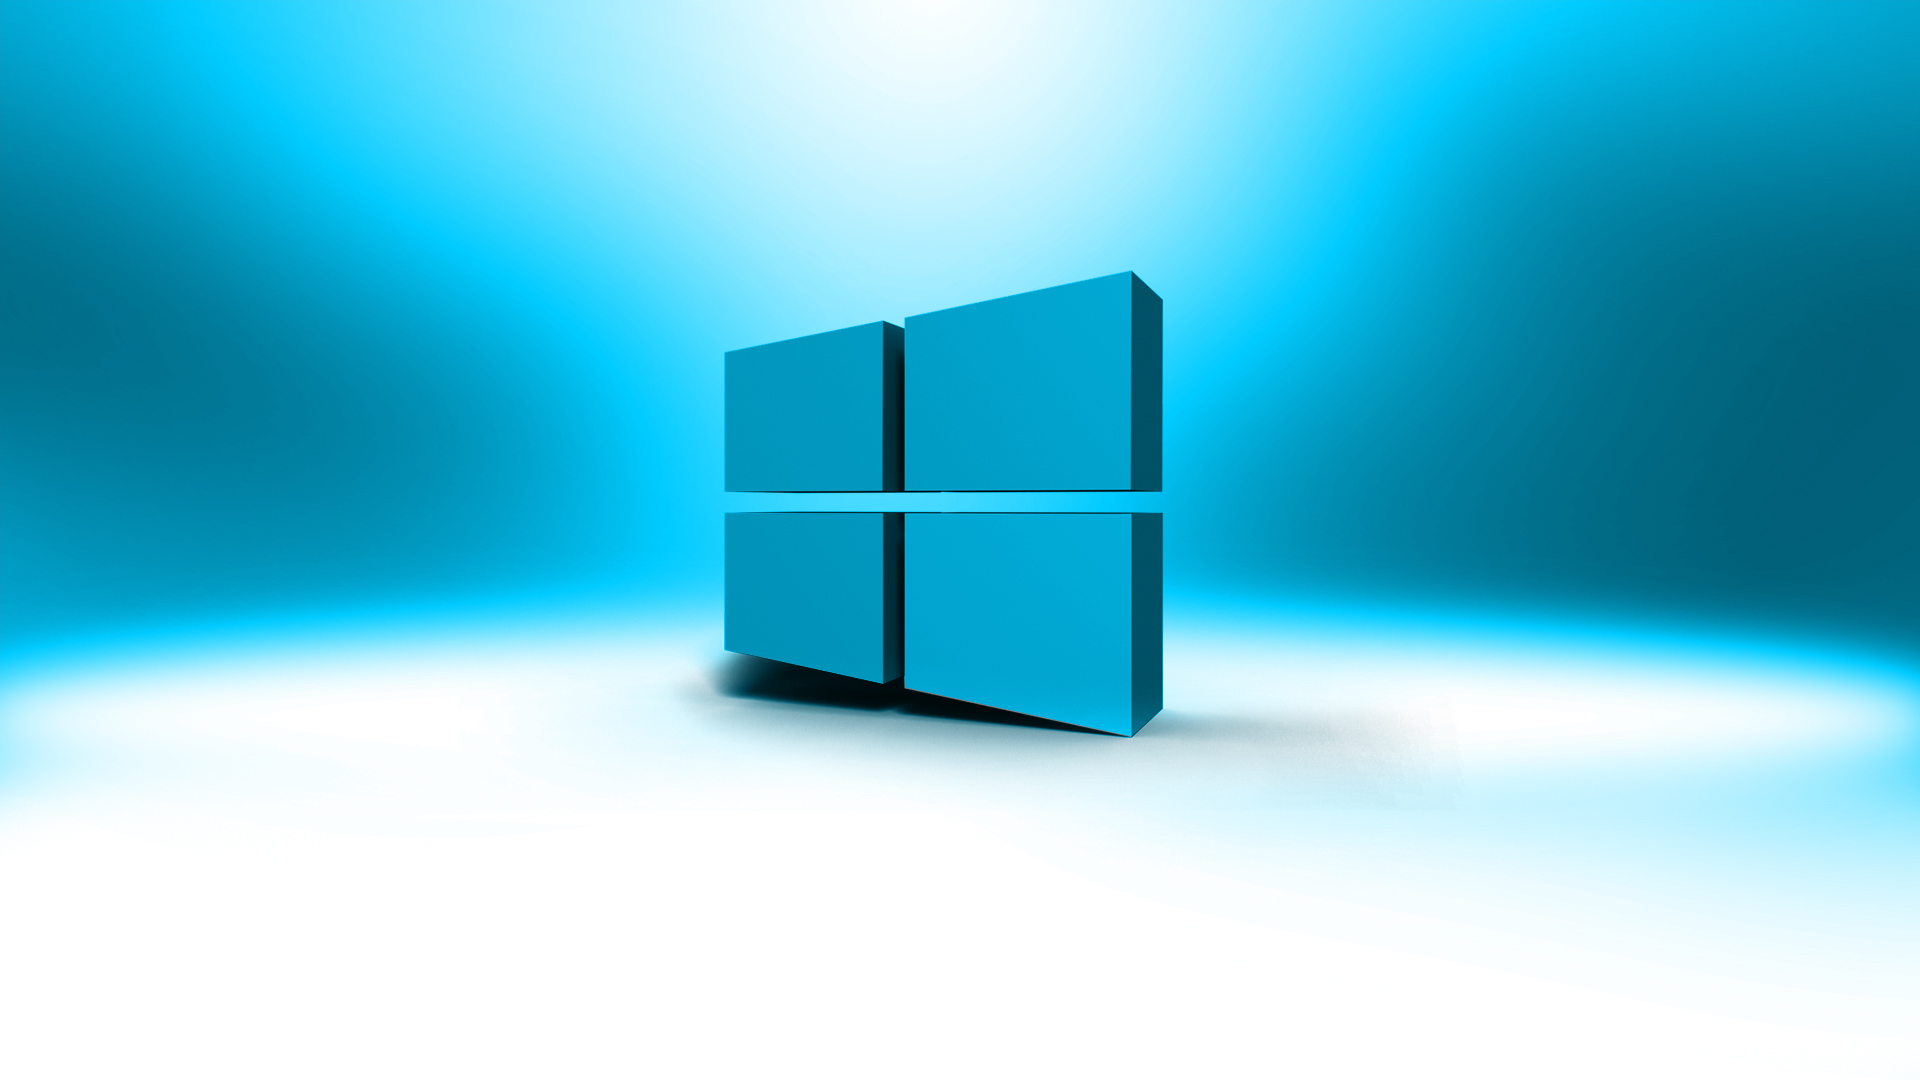 windows 8 wallpaper 3d by metroui customization wallpaper mac pc os 1920x1080